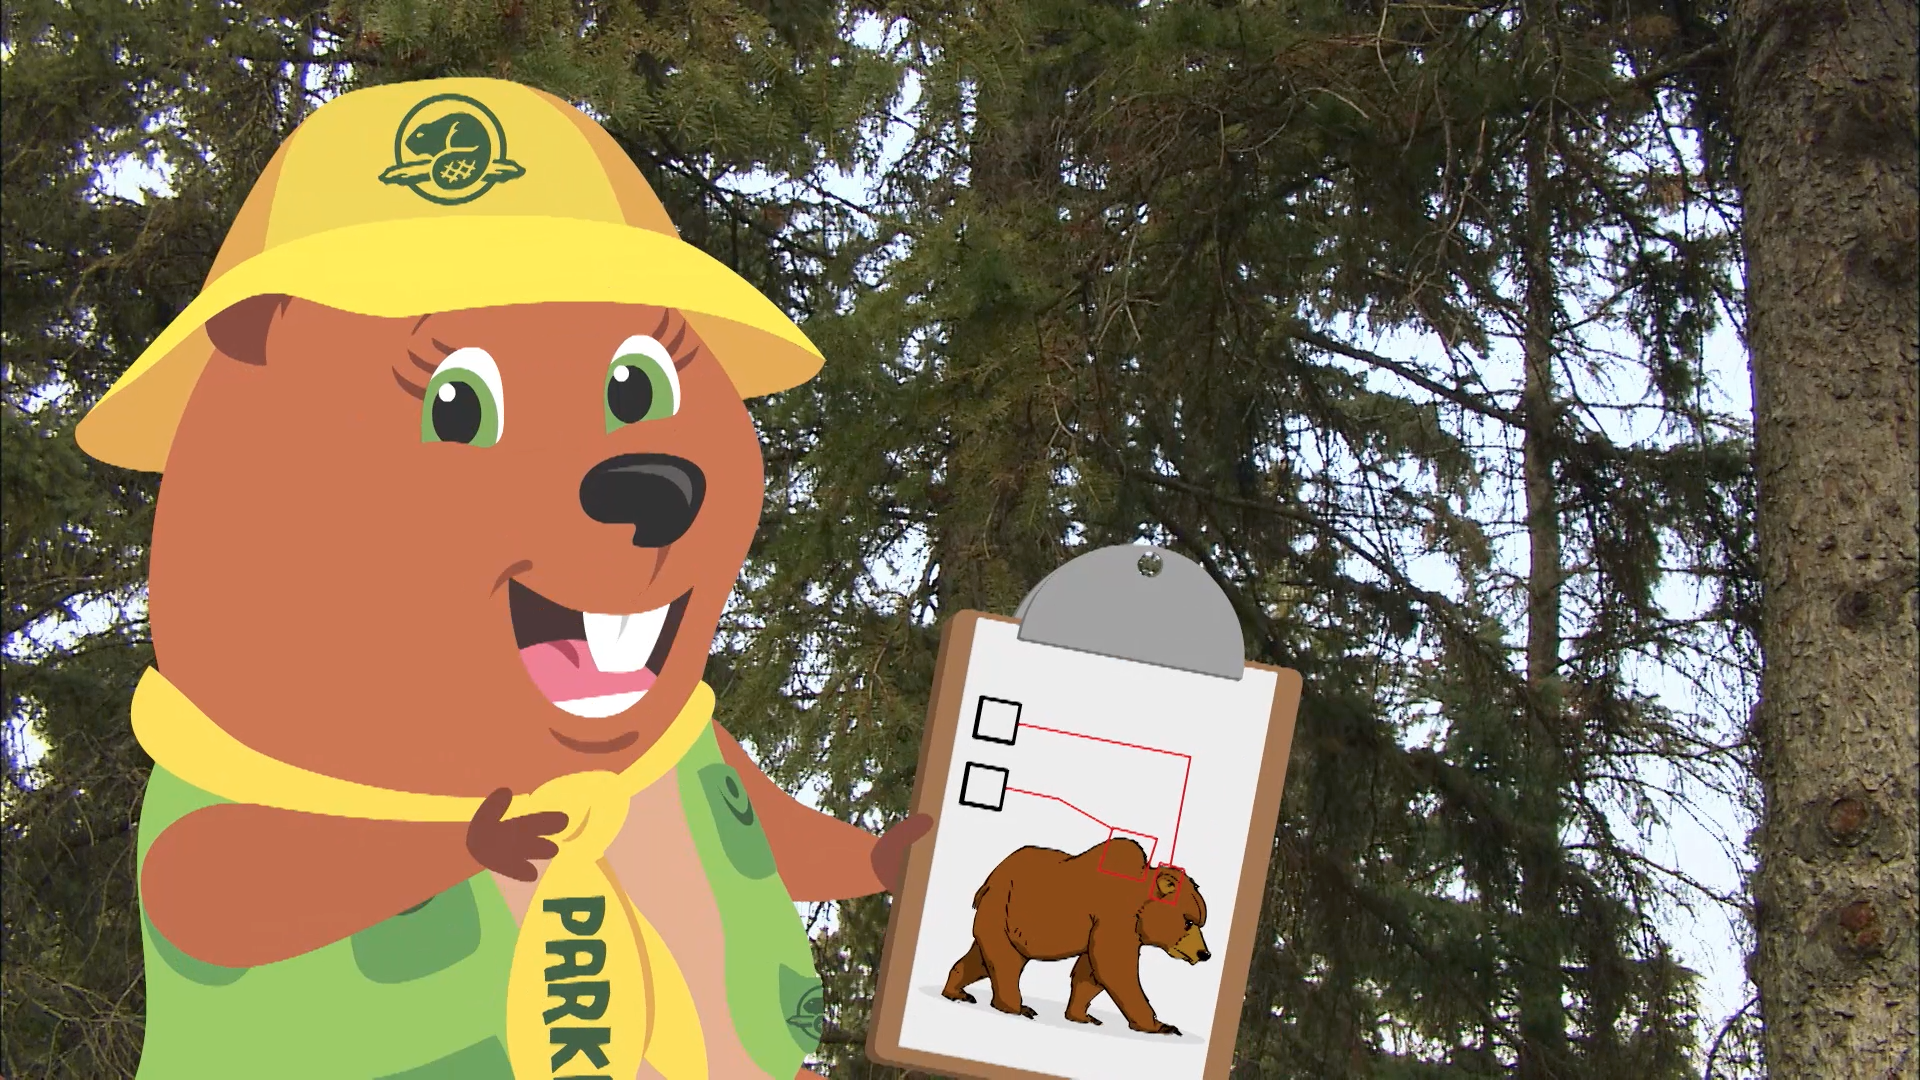 Parka is on a search for a Grizzly Bear and discovers that Grizzlies have a hump on their backs and short round ears.